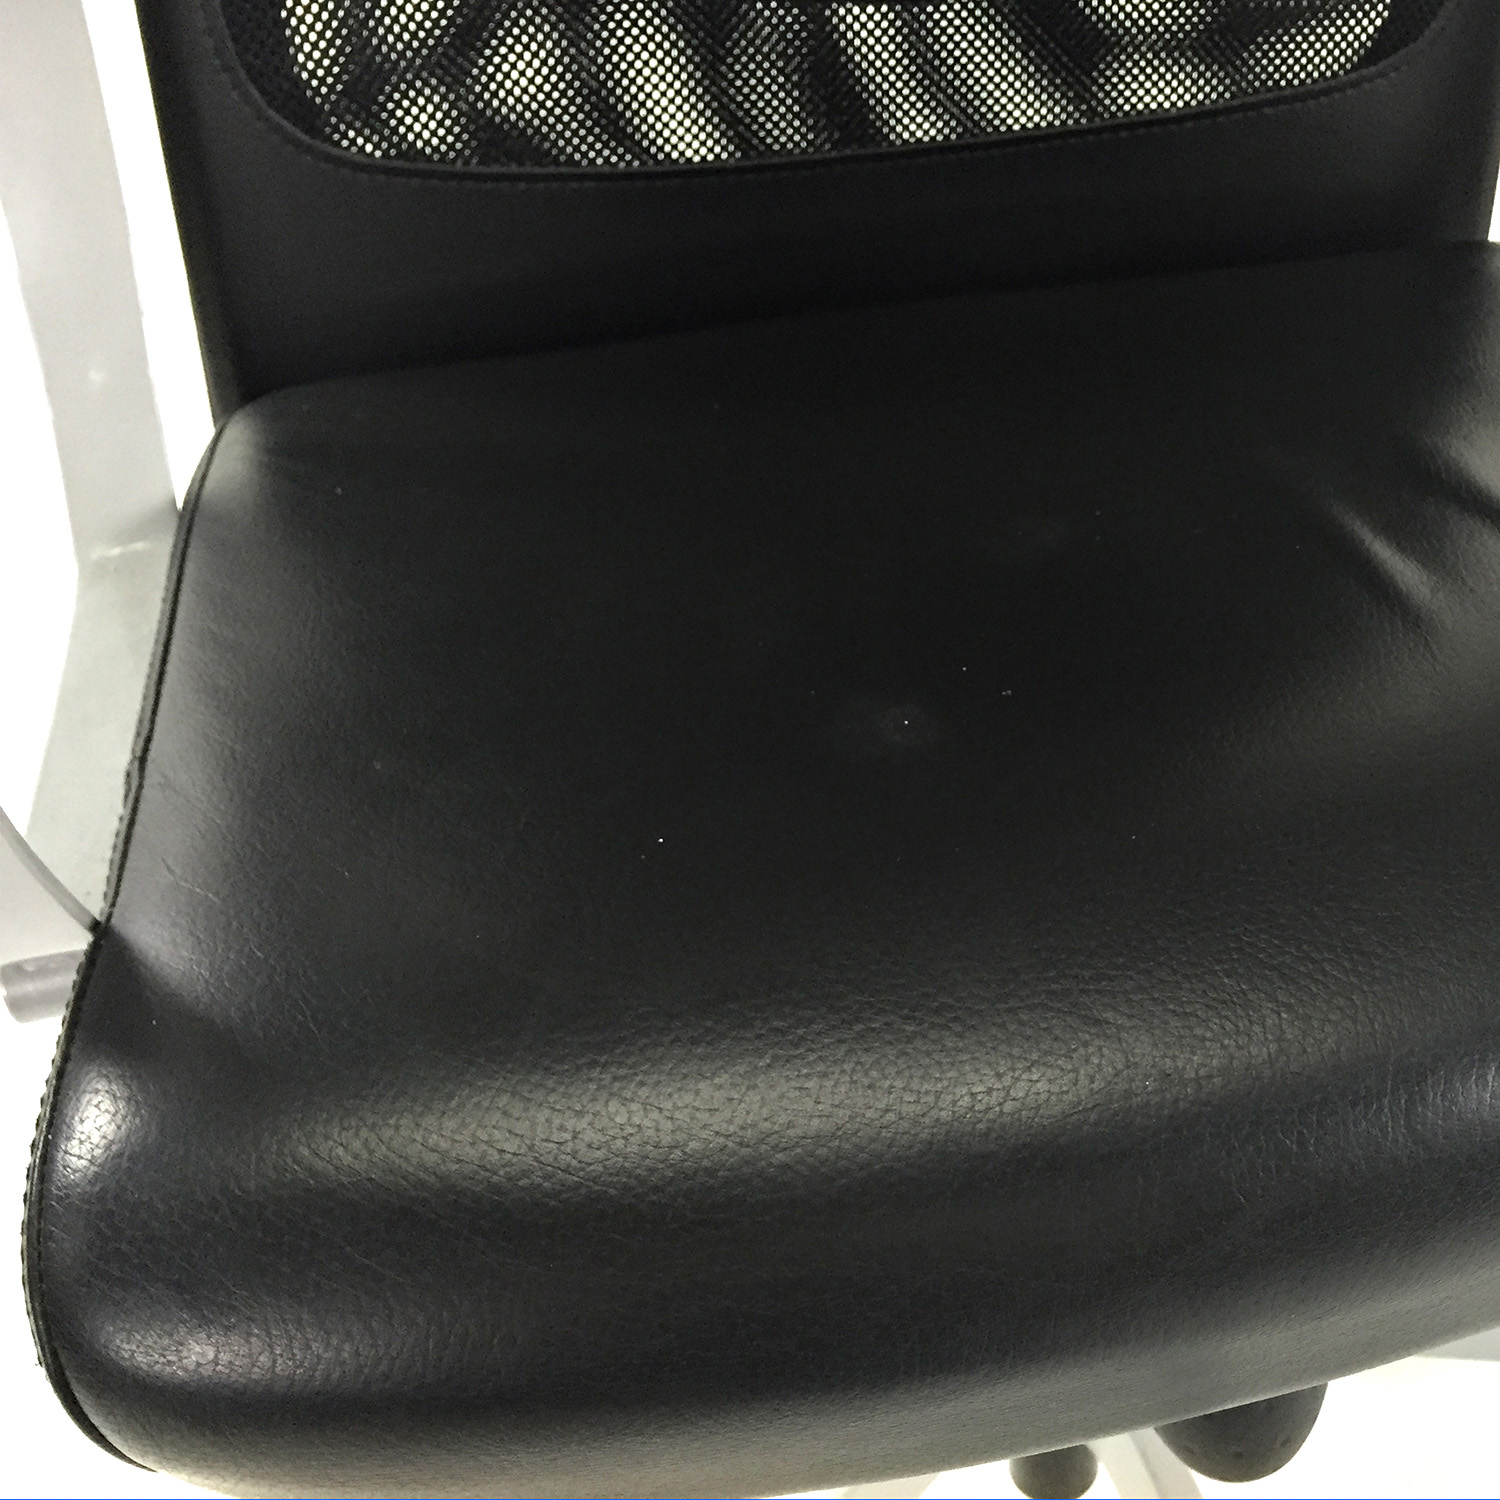 IKEA Markus Swivel Chair nj